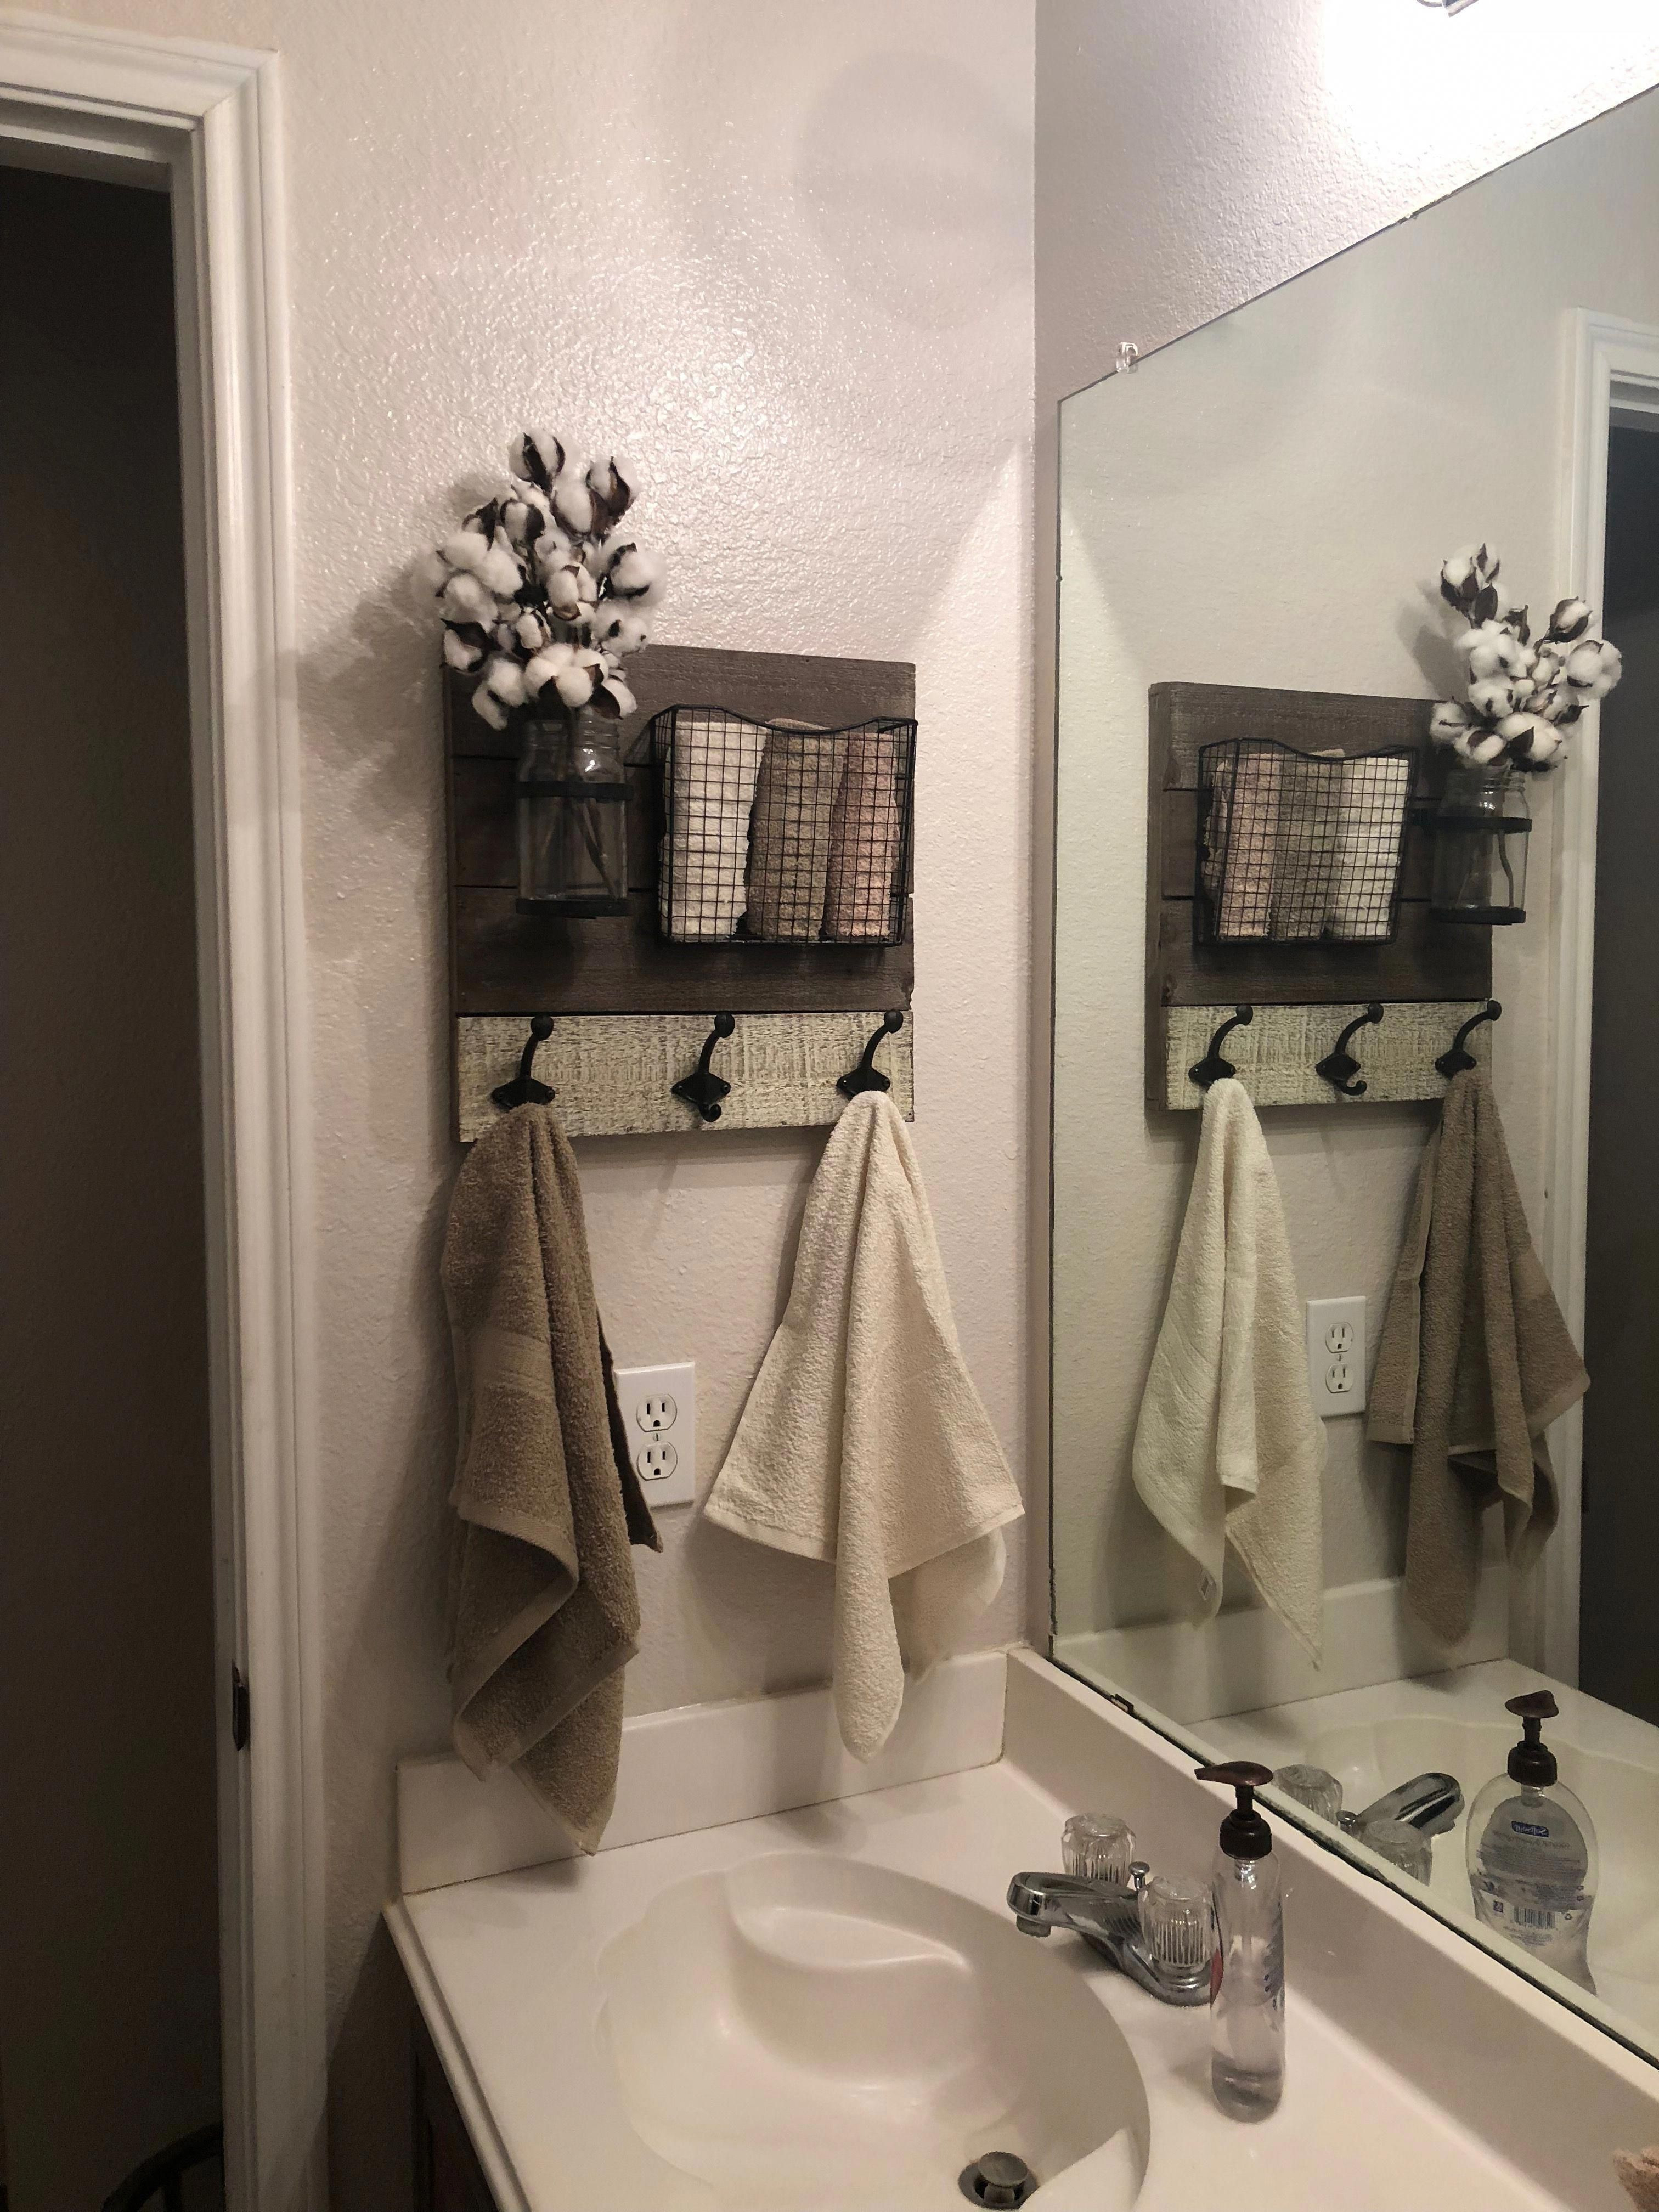 Bathroom Wall Decorations Ideas Best Of are You Interested In Bathroom Decor Wall then Read On to